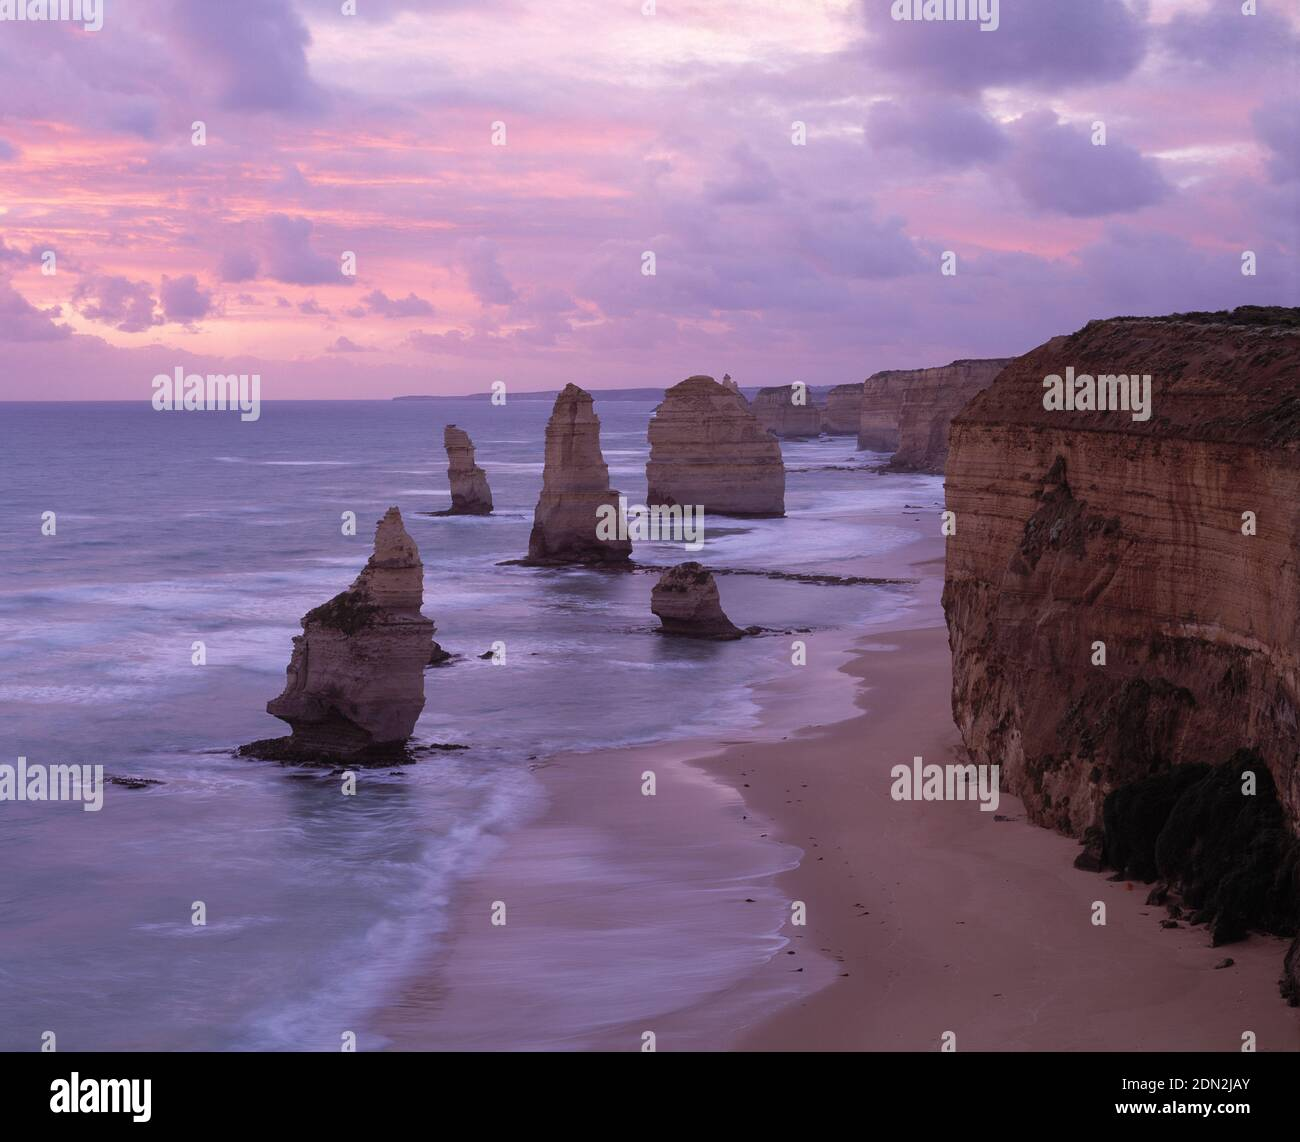 Australia. Victoria. Port Campbell National Park. Great Ocean Road coast. Cliffs and the 12 Apostles rock formations. Stock Photo